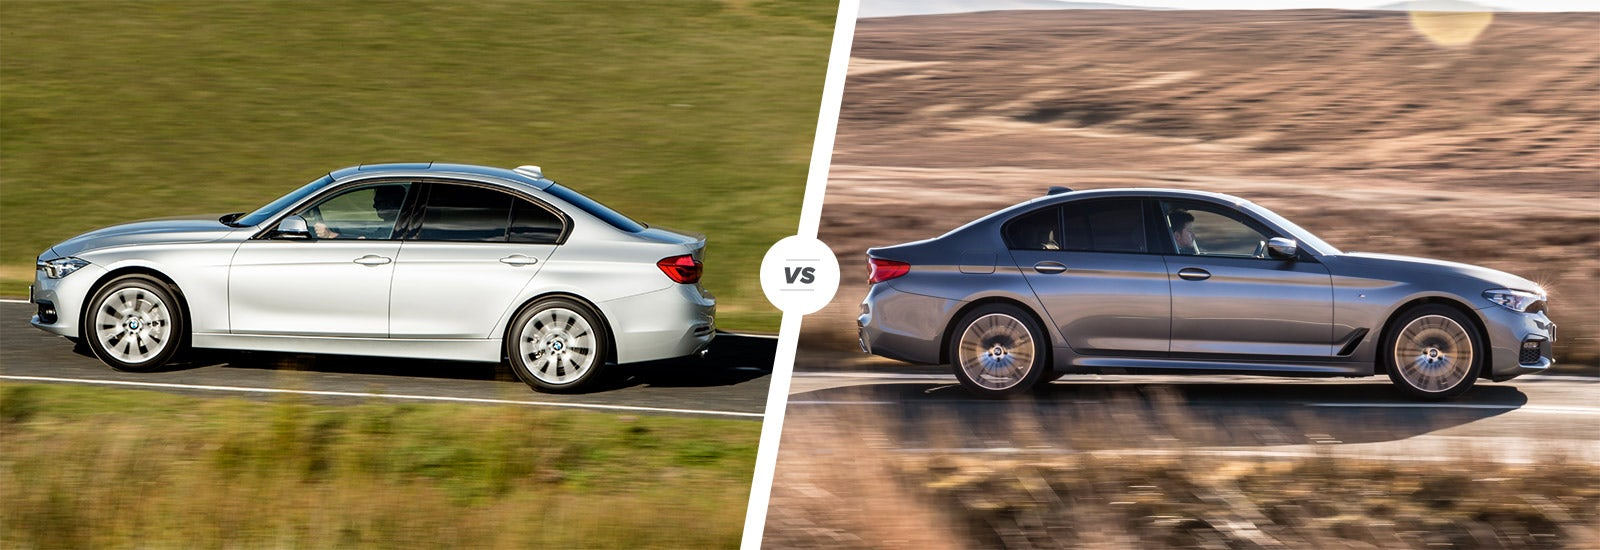 BMW 3 Series bmw 3 series height BMW 3 Series vs 5 Series – which should you buy? | carwow